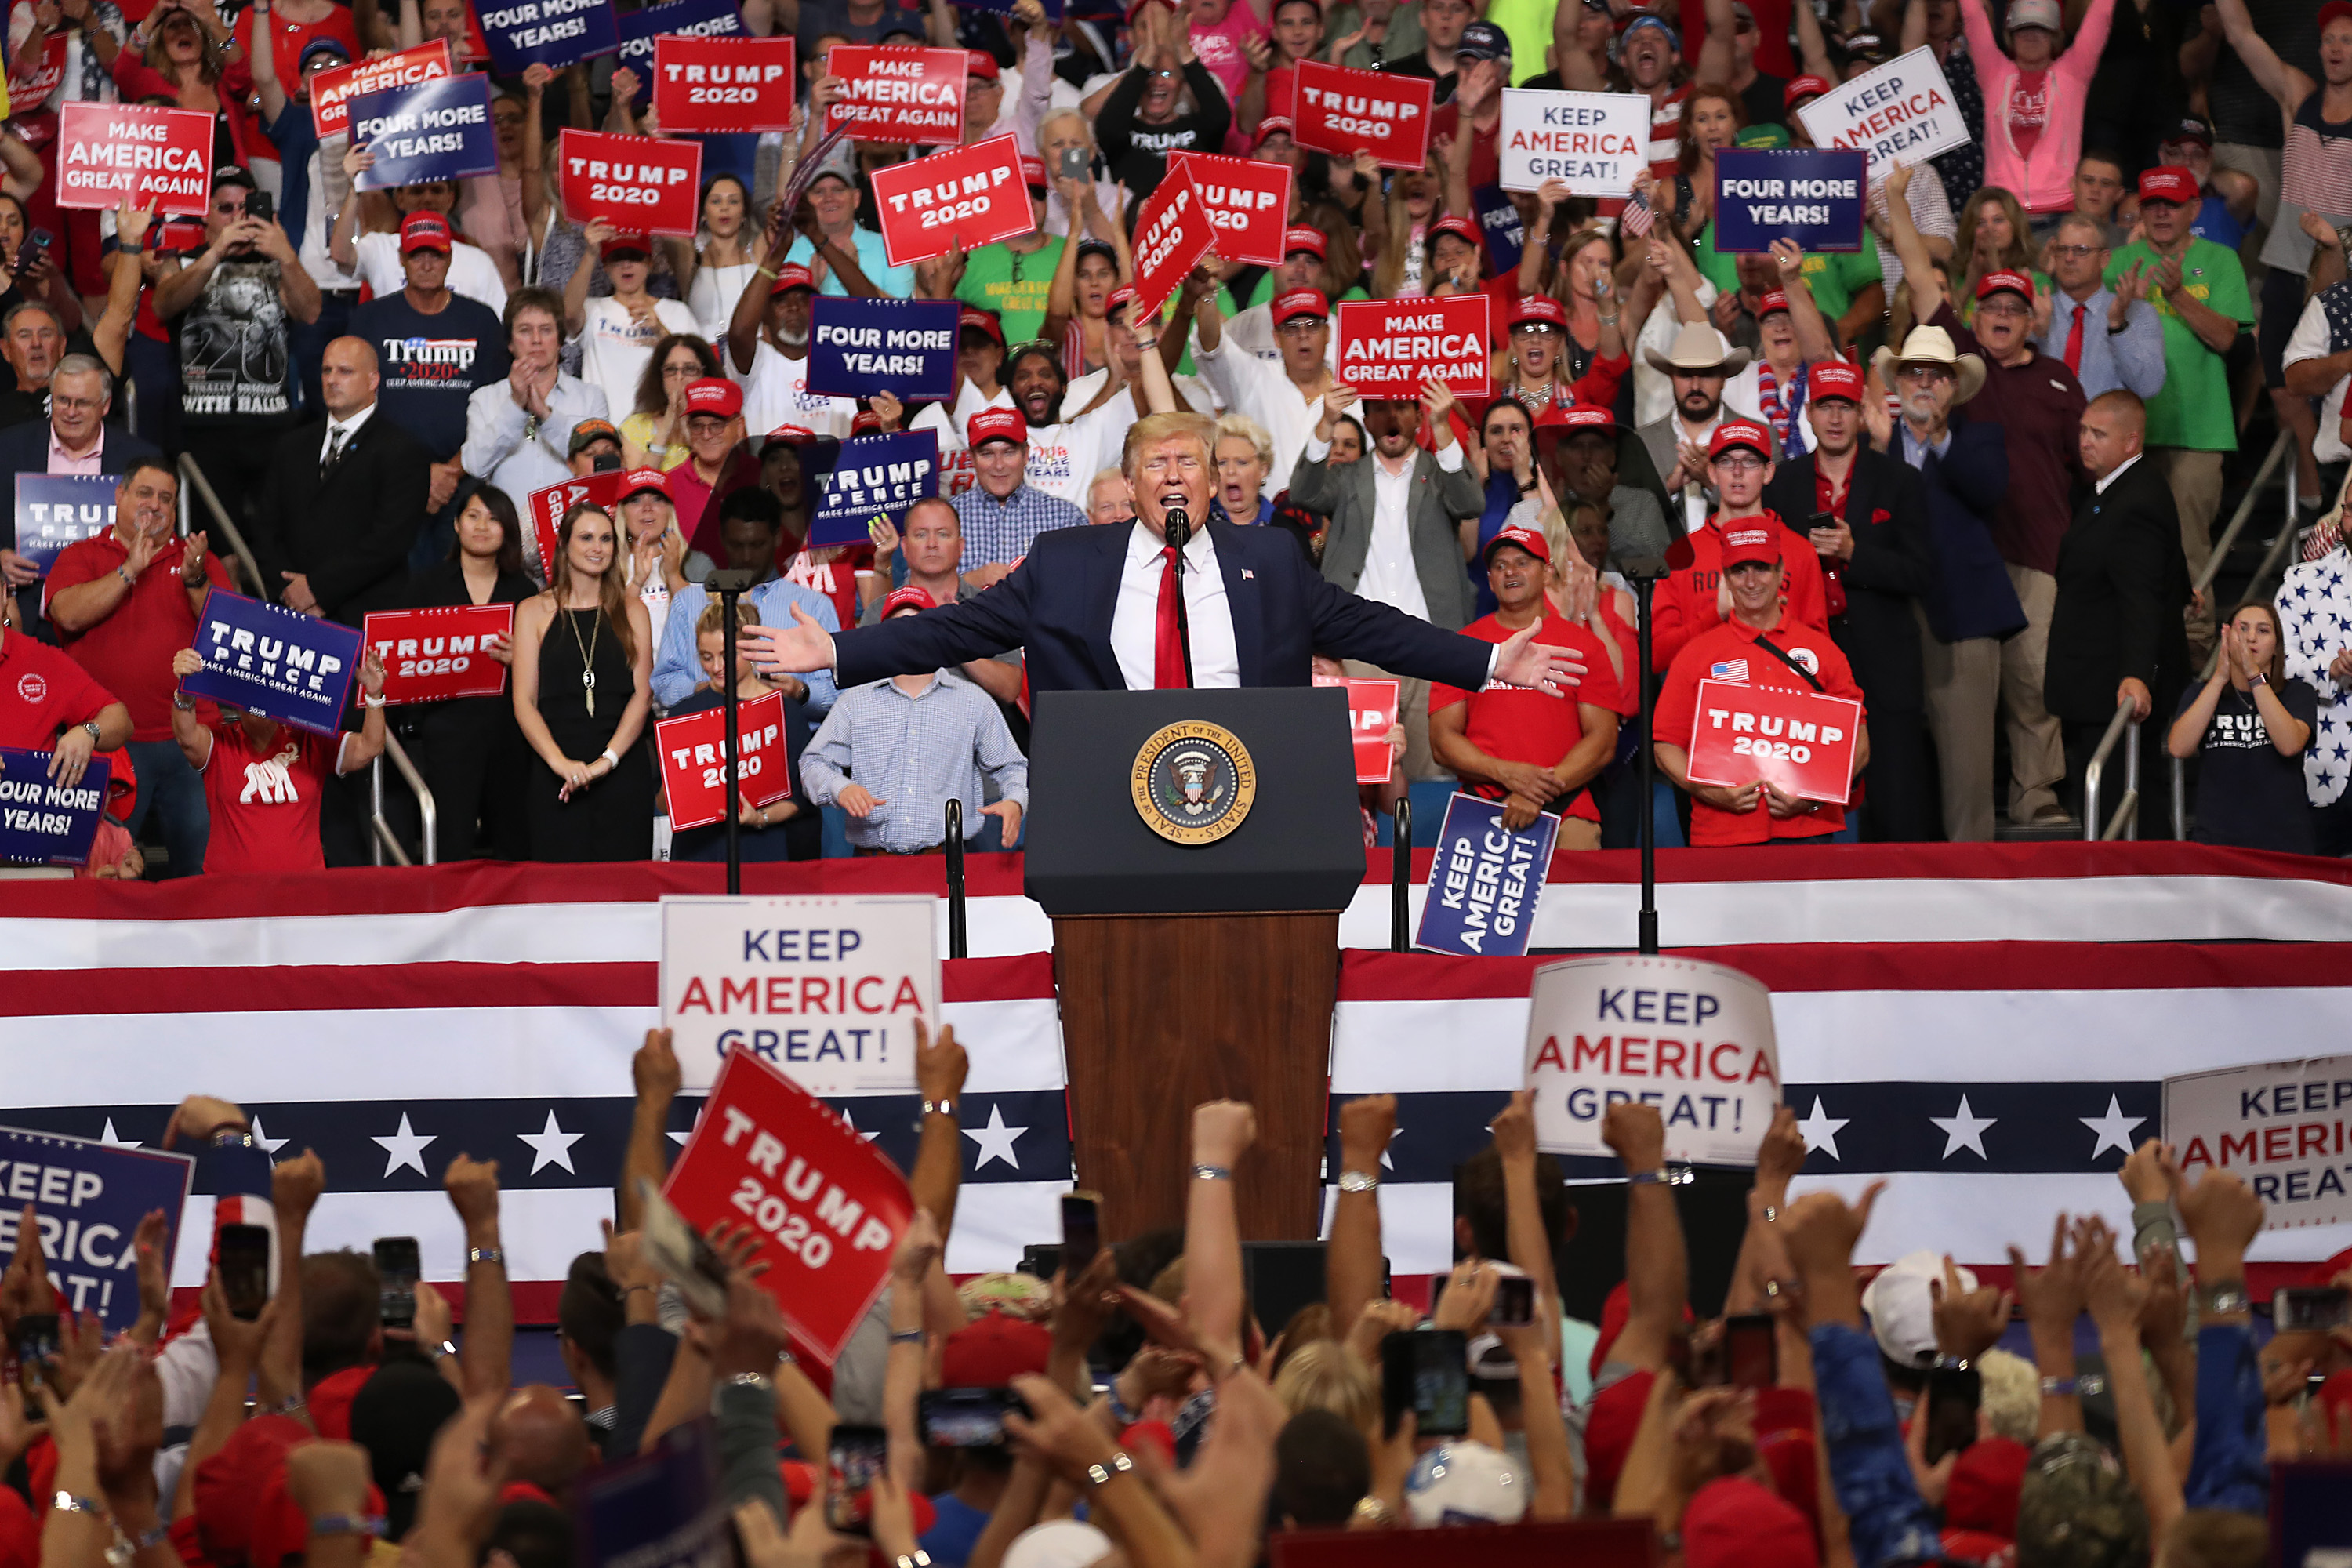 President Donald Trump at a rally announcing his reelection campaign.